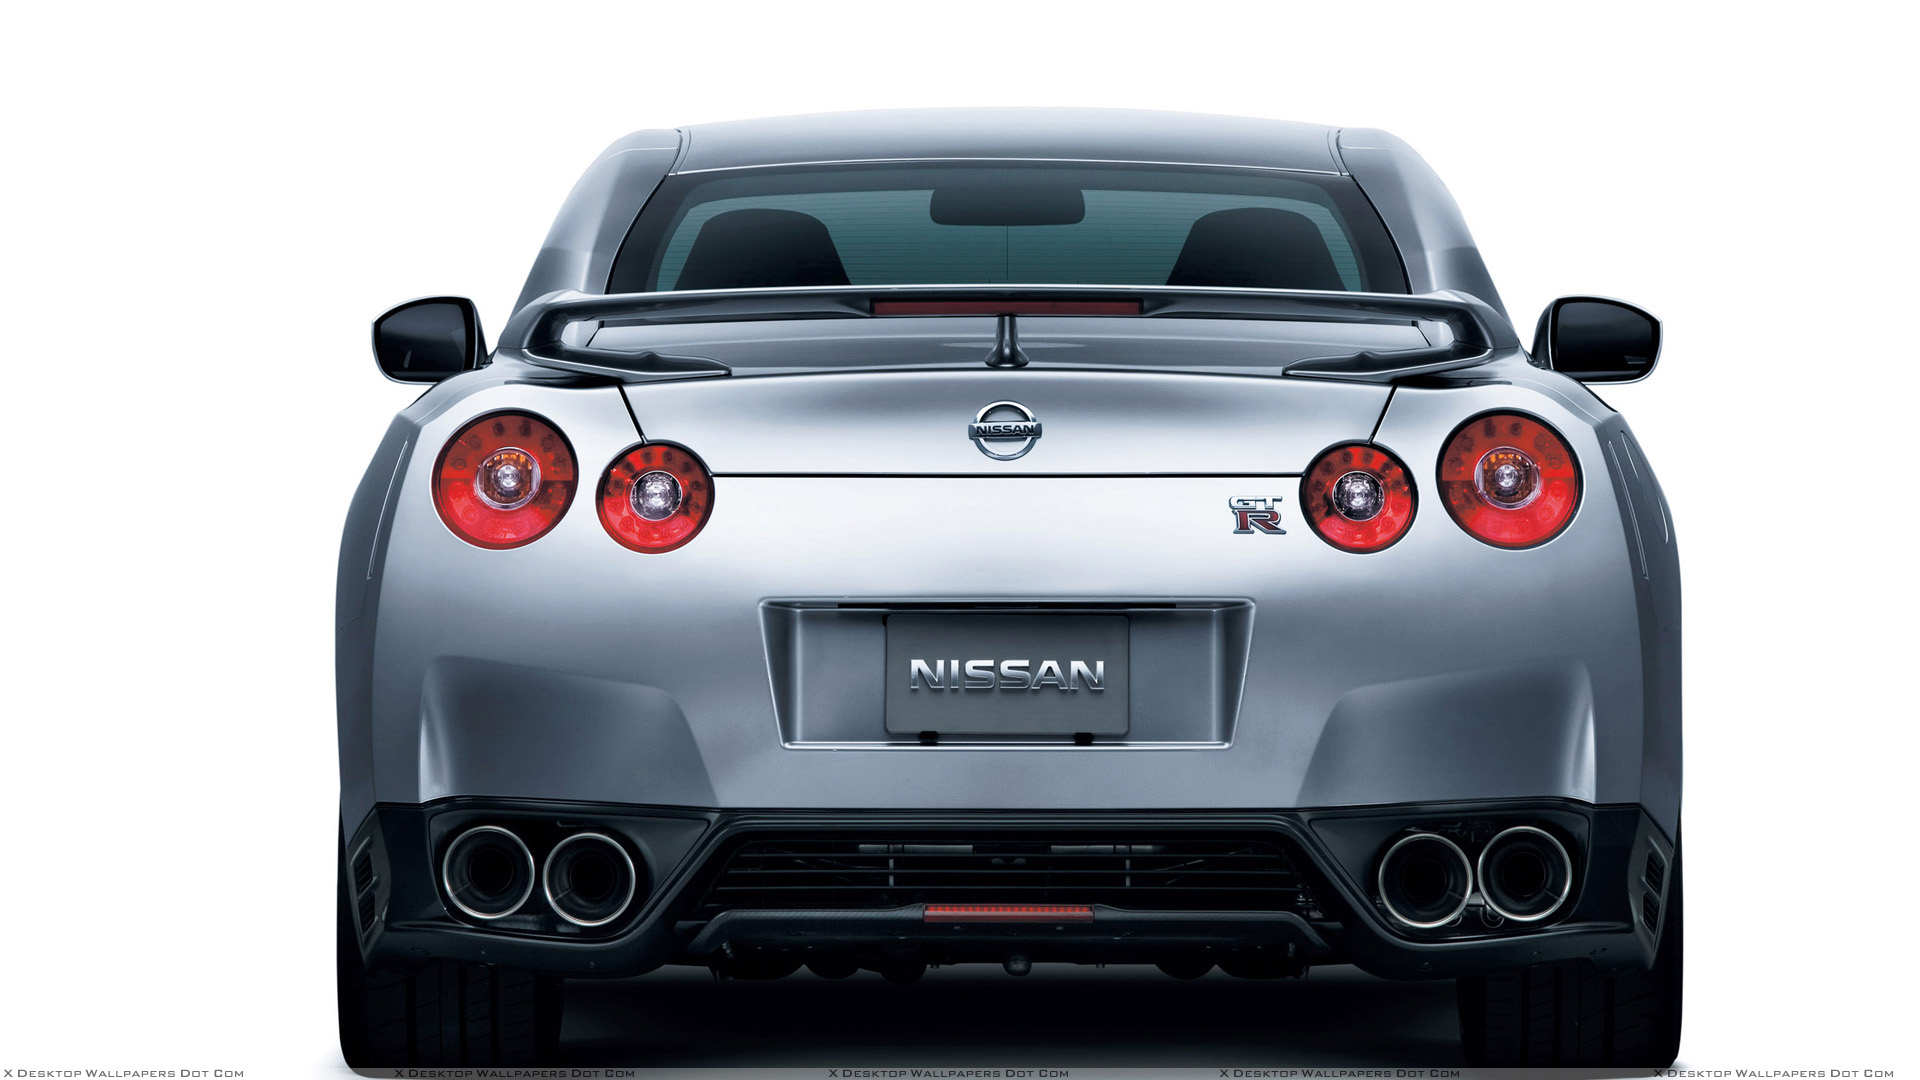 Nissan Gt R Wallpapers Photos Images In Hd